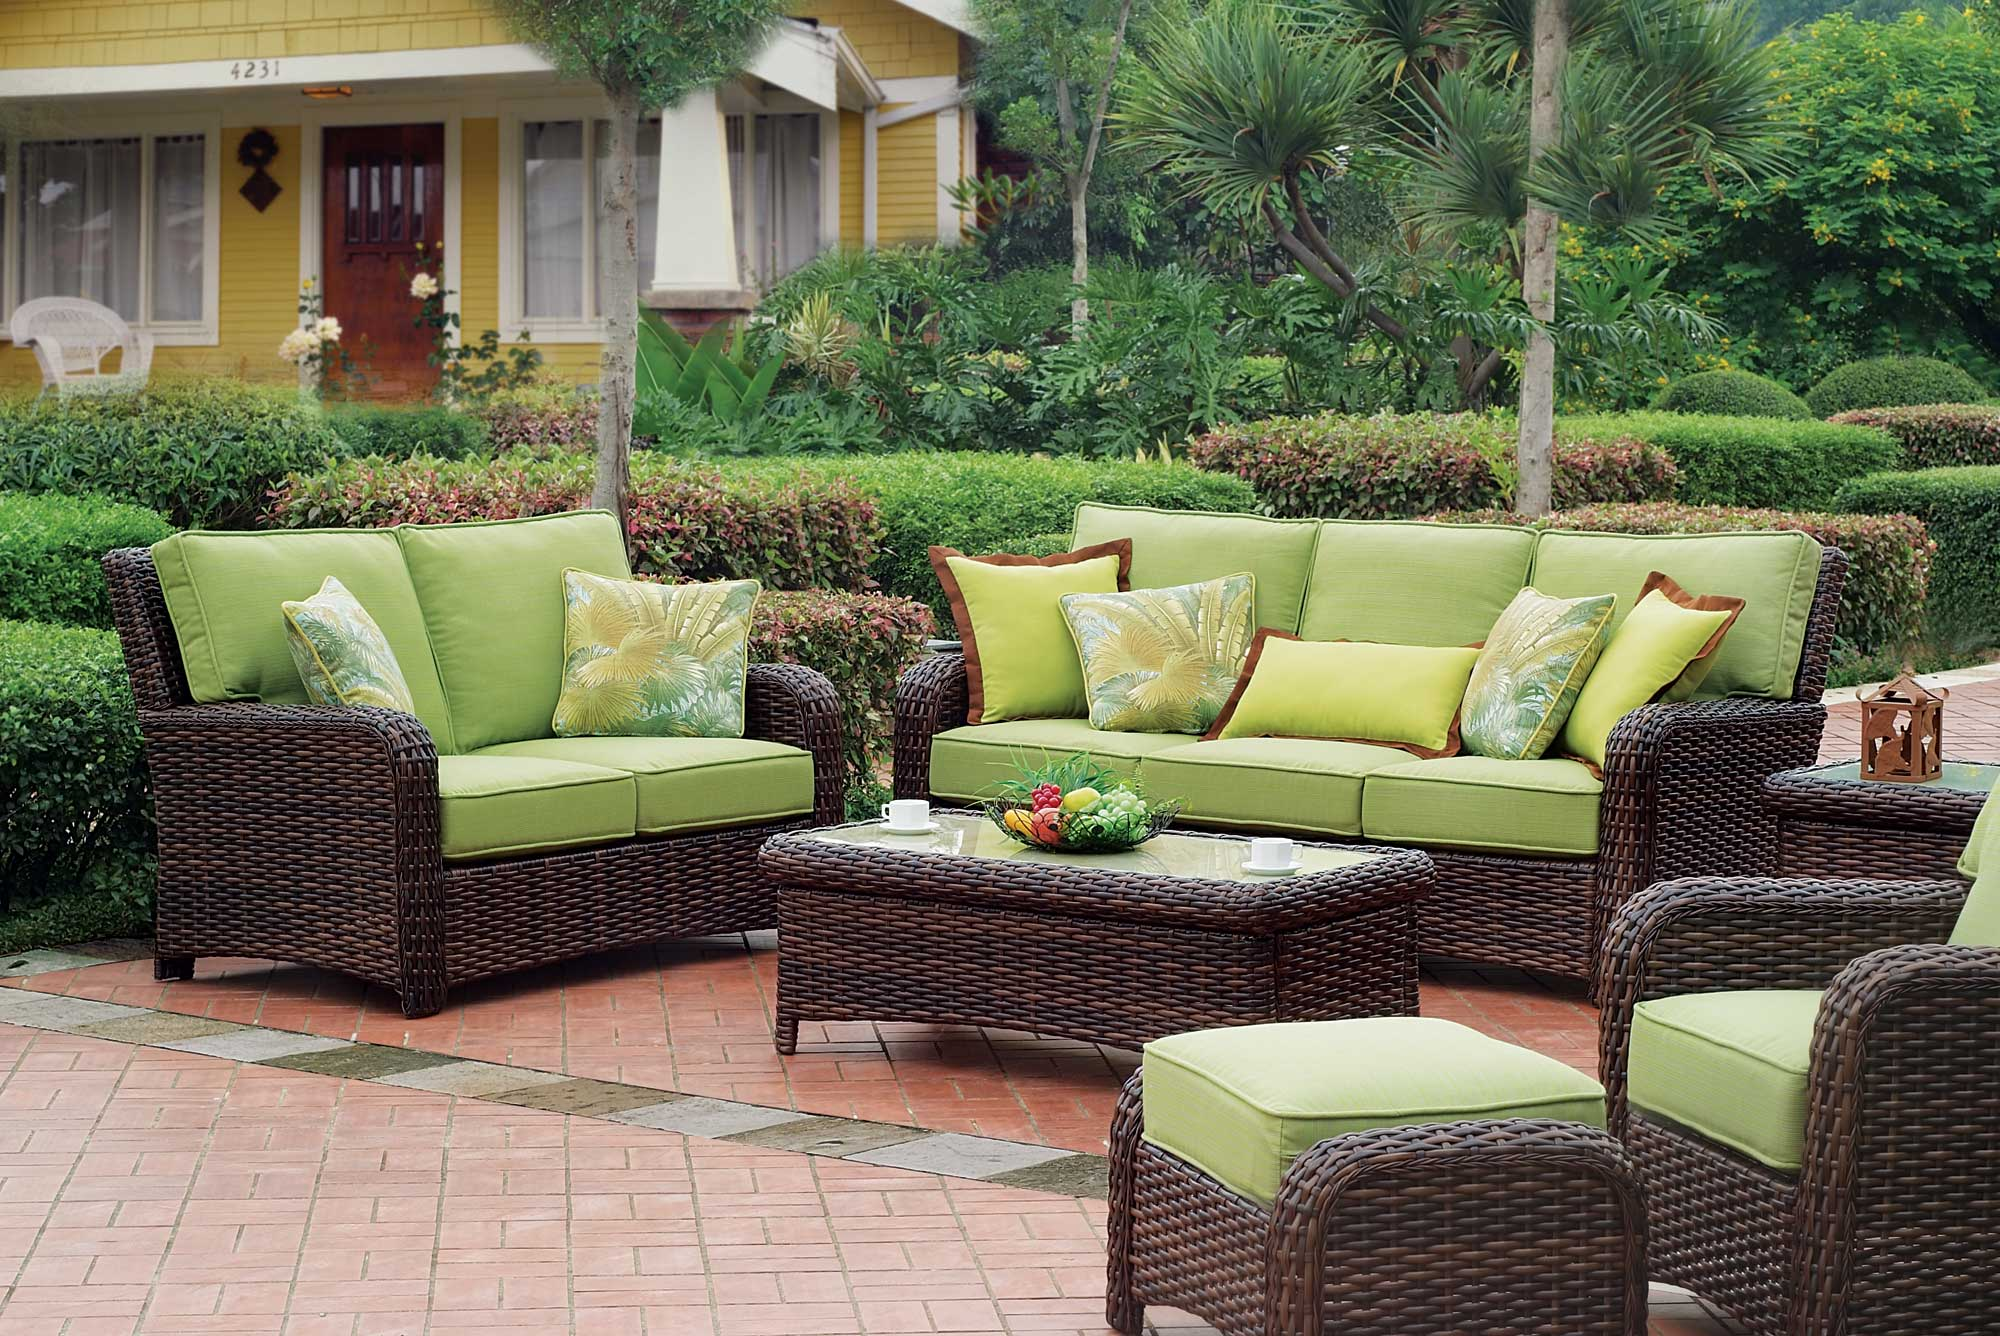 The Best Choice for Patio Furniture